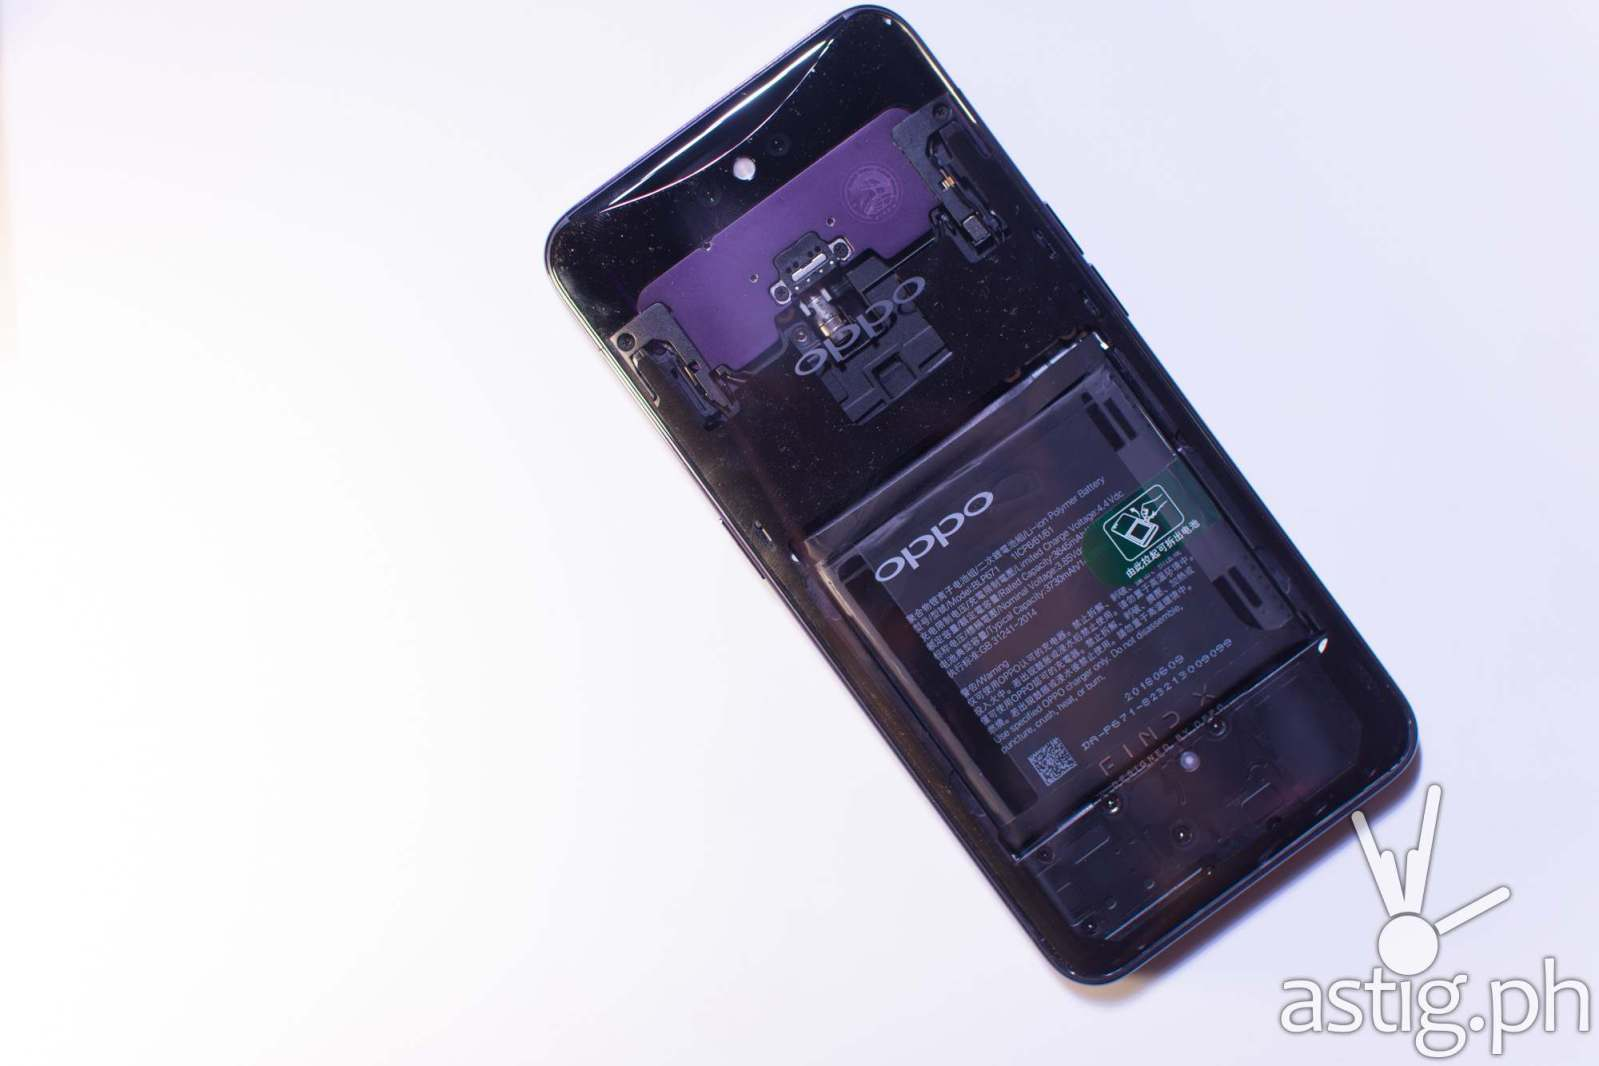 OPPO Find X with transparent back used to demonstrate the pop up camera mechanism - OPPO Find X Philippine launch